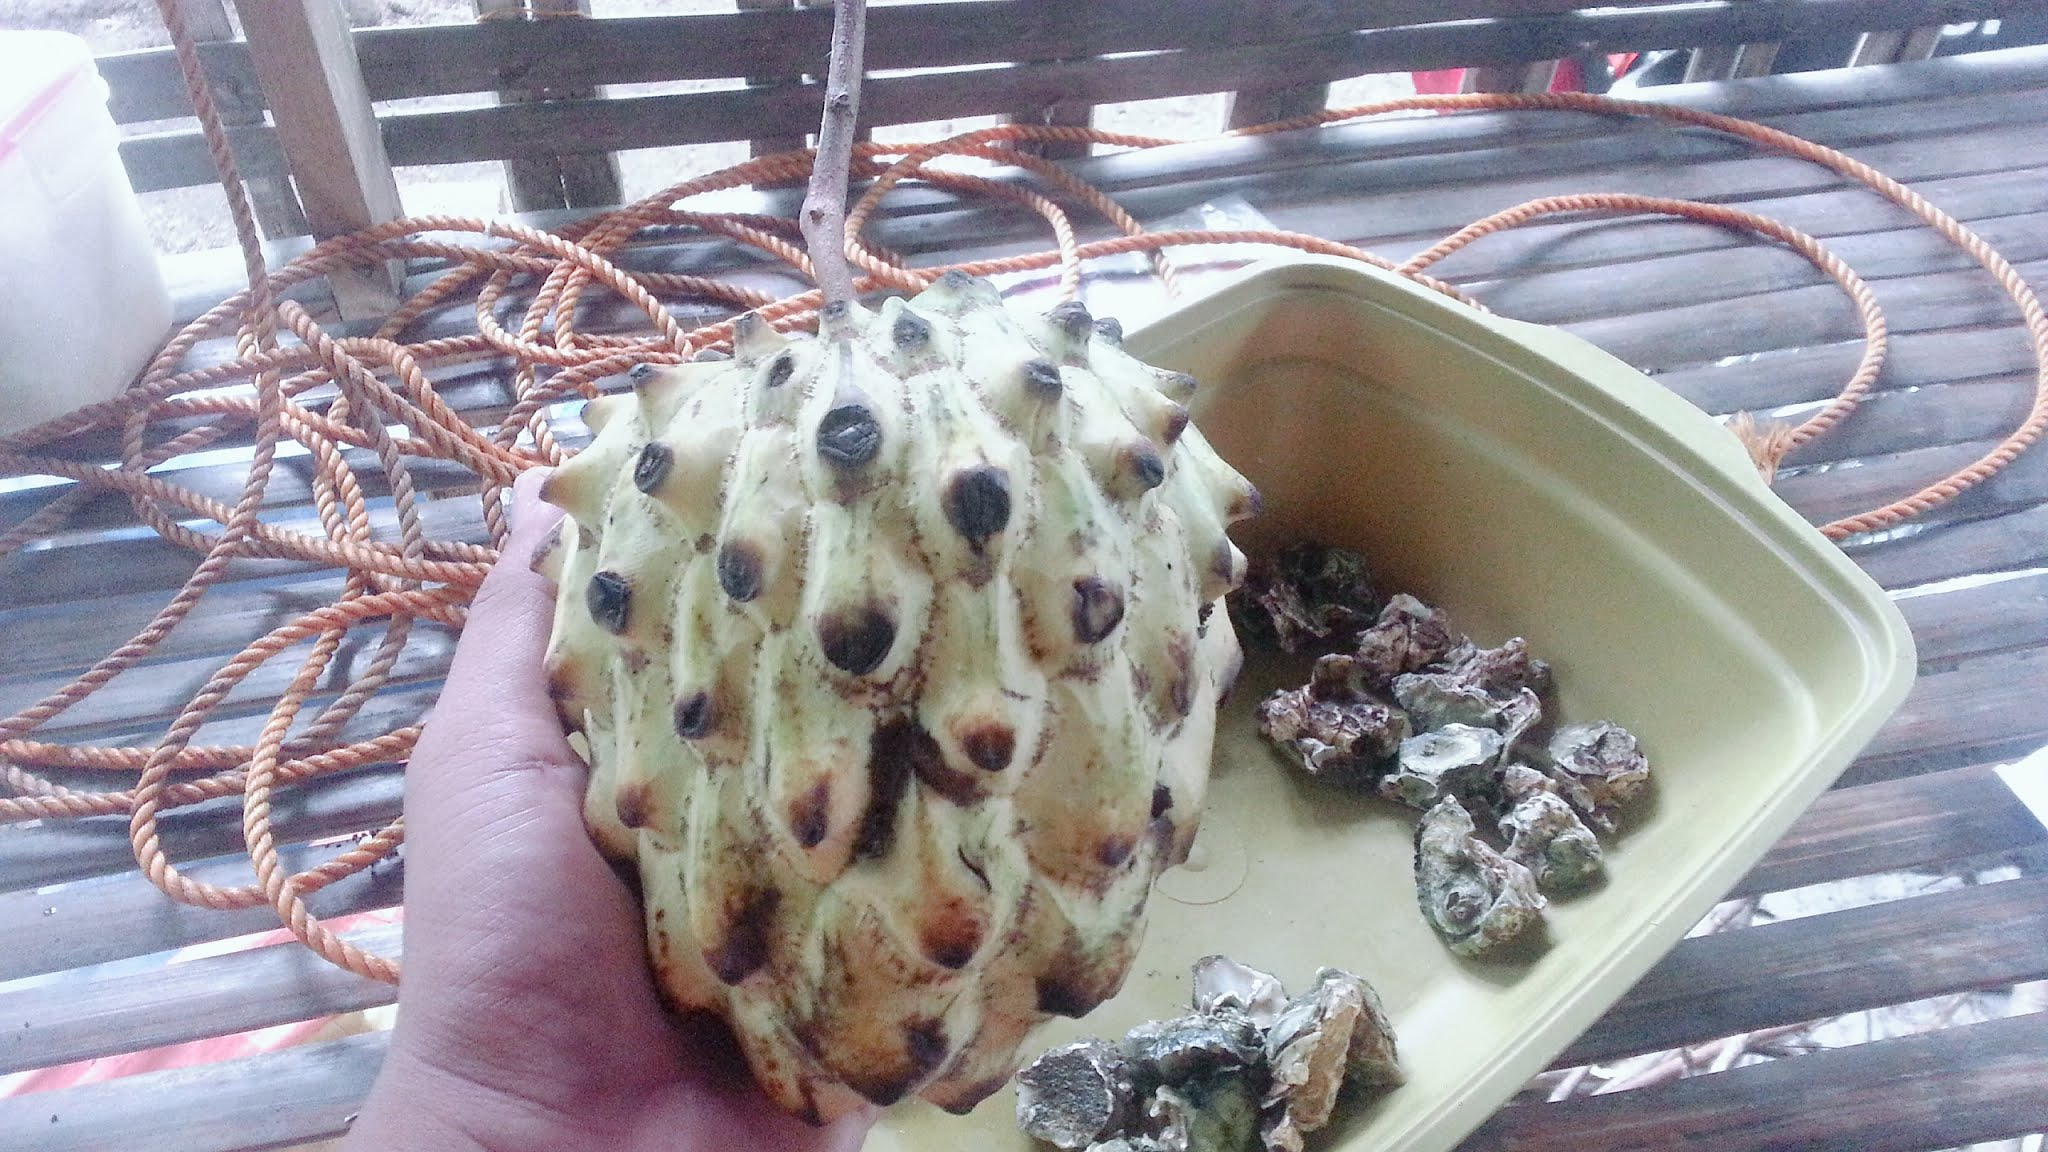 Image of Devil Fruits, ‎Paramecia Devil Fruit Users, ‎Artificial Devil Fruit, ‎Ito Ito no Mi, Awakening of Devil fruit, Devil fruits